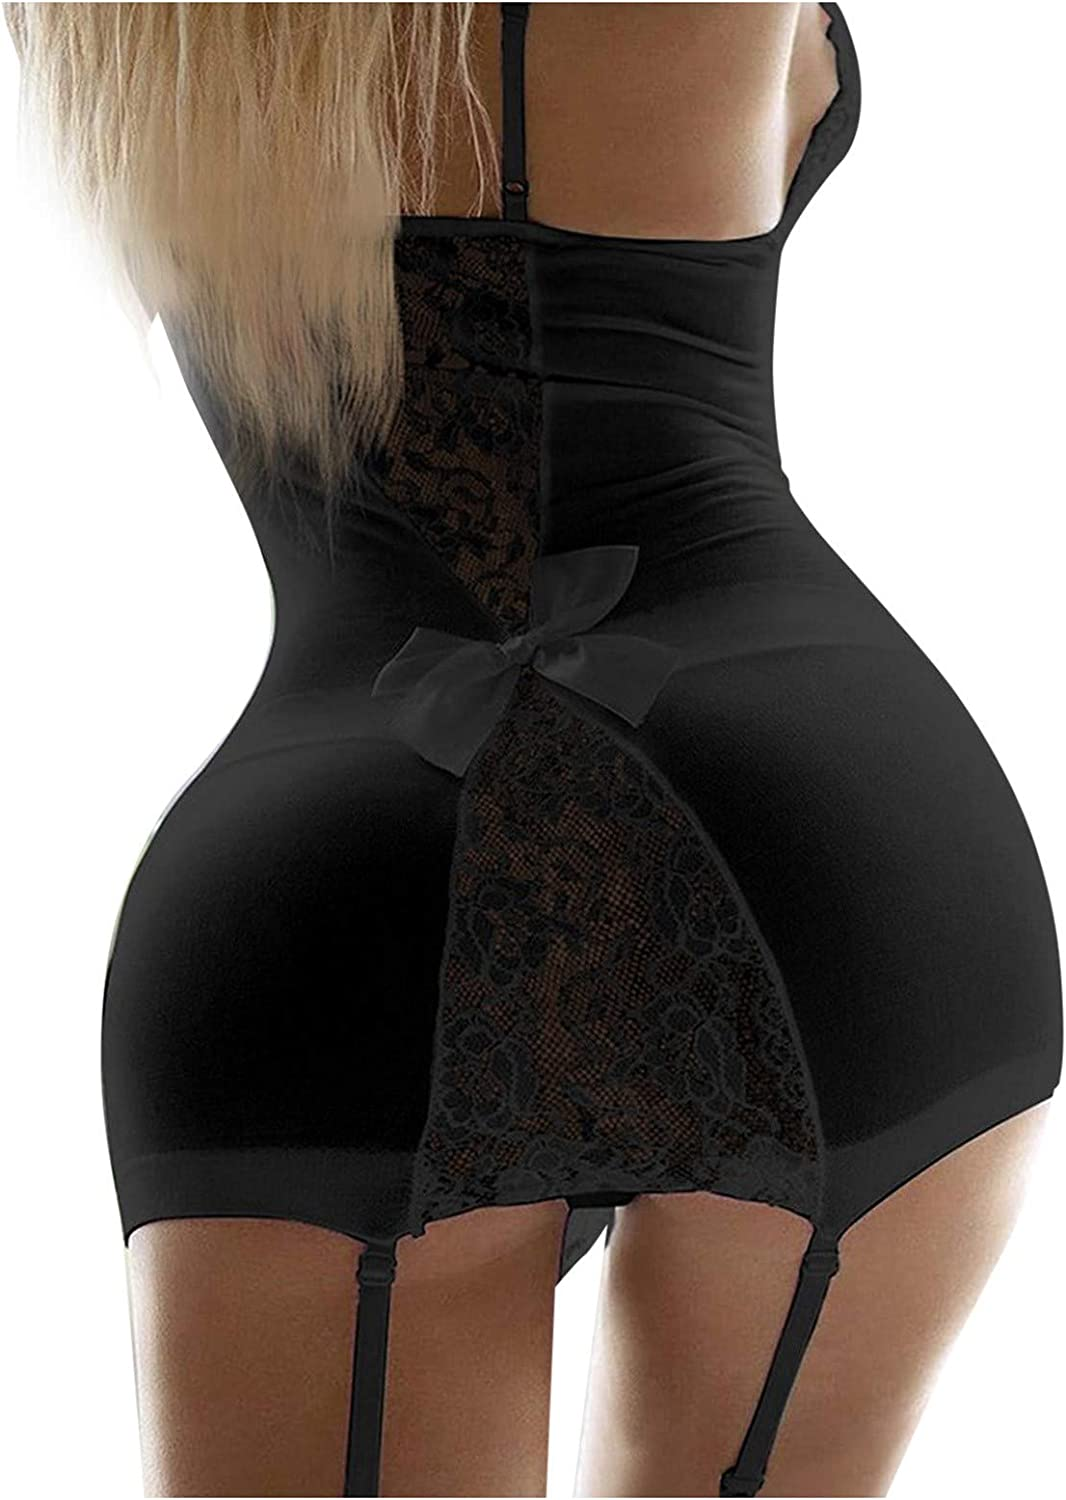 Forwelly Women Lace Lingerie V-Neck Chemise and Thong with Garter Underwear Pajamas Suit Set